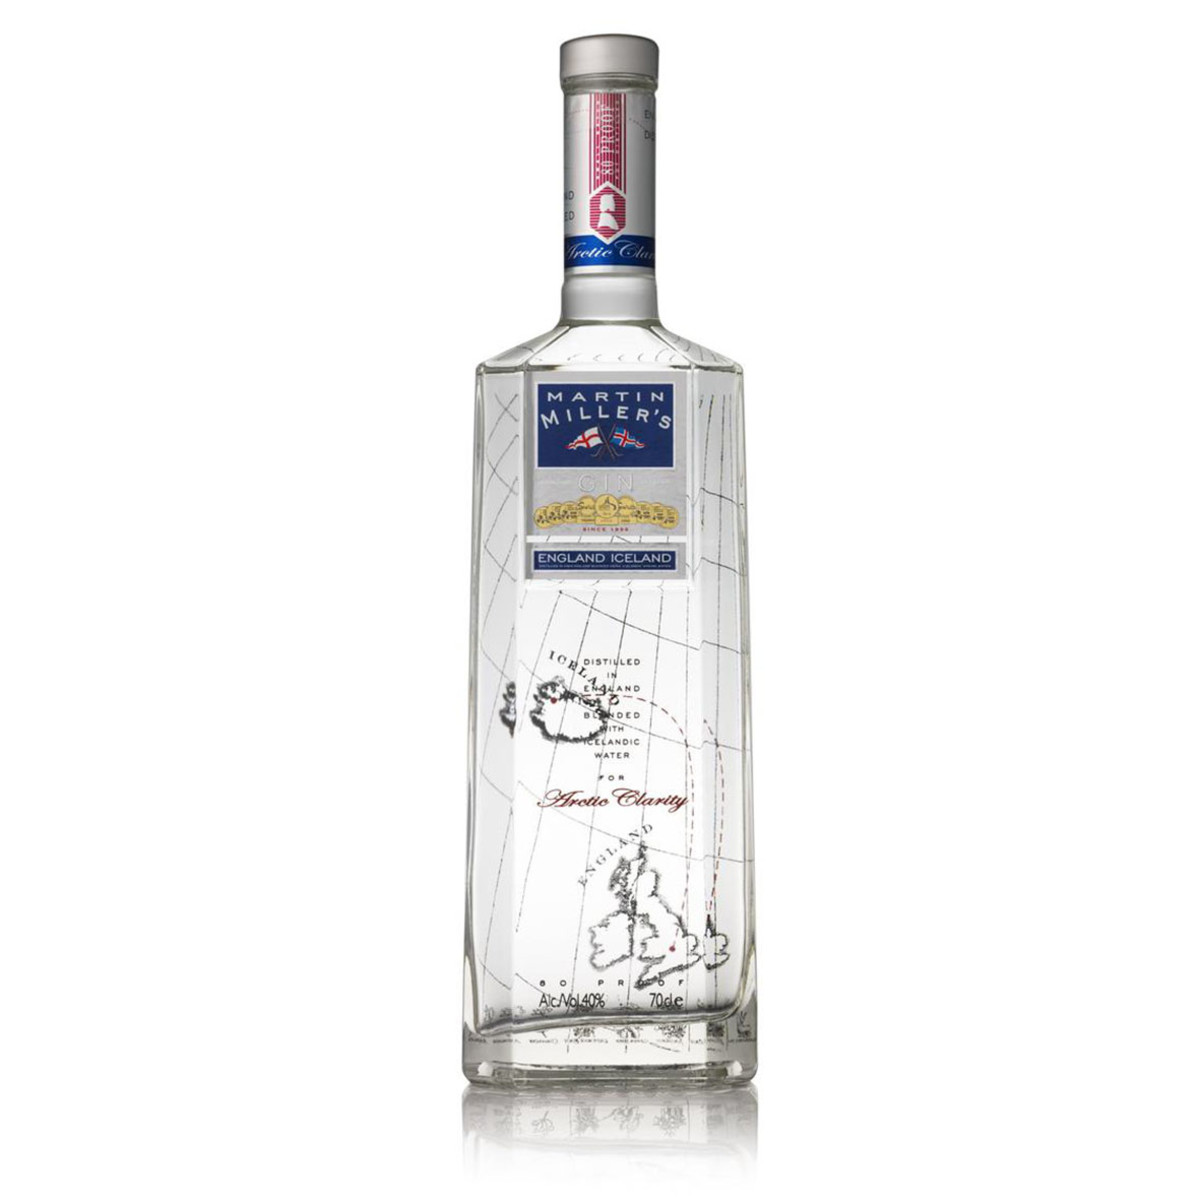 A pioneer of the gin renaissance, Martin Miller's brought a new take on gin, including using cucumber as a botanical for a dry finish, and pure Icelandic water for dilution, giving the gin a softer taste experience overall.